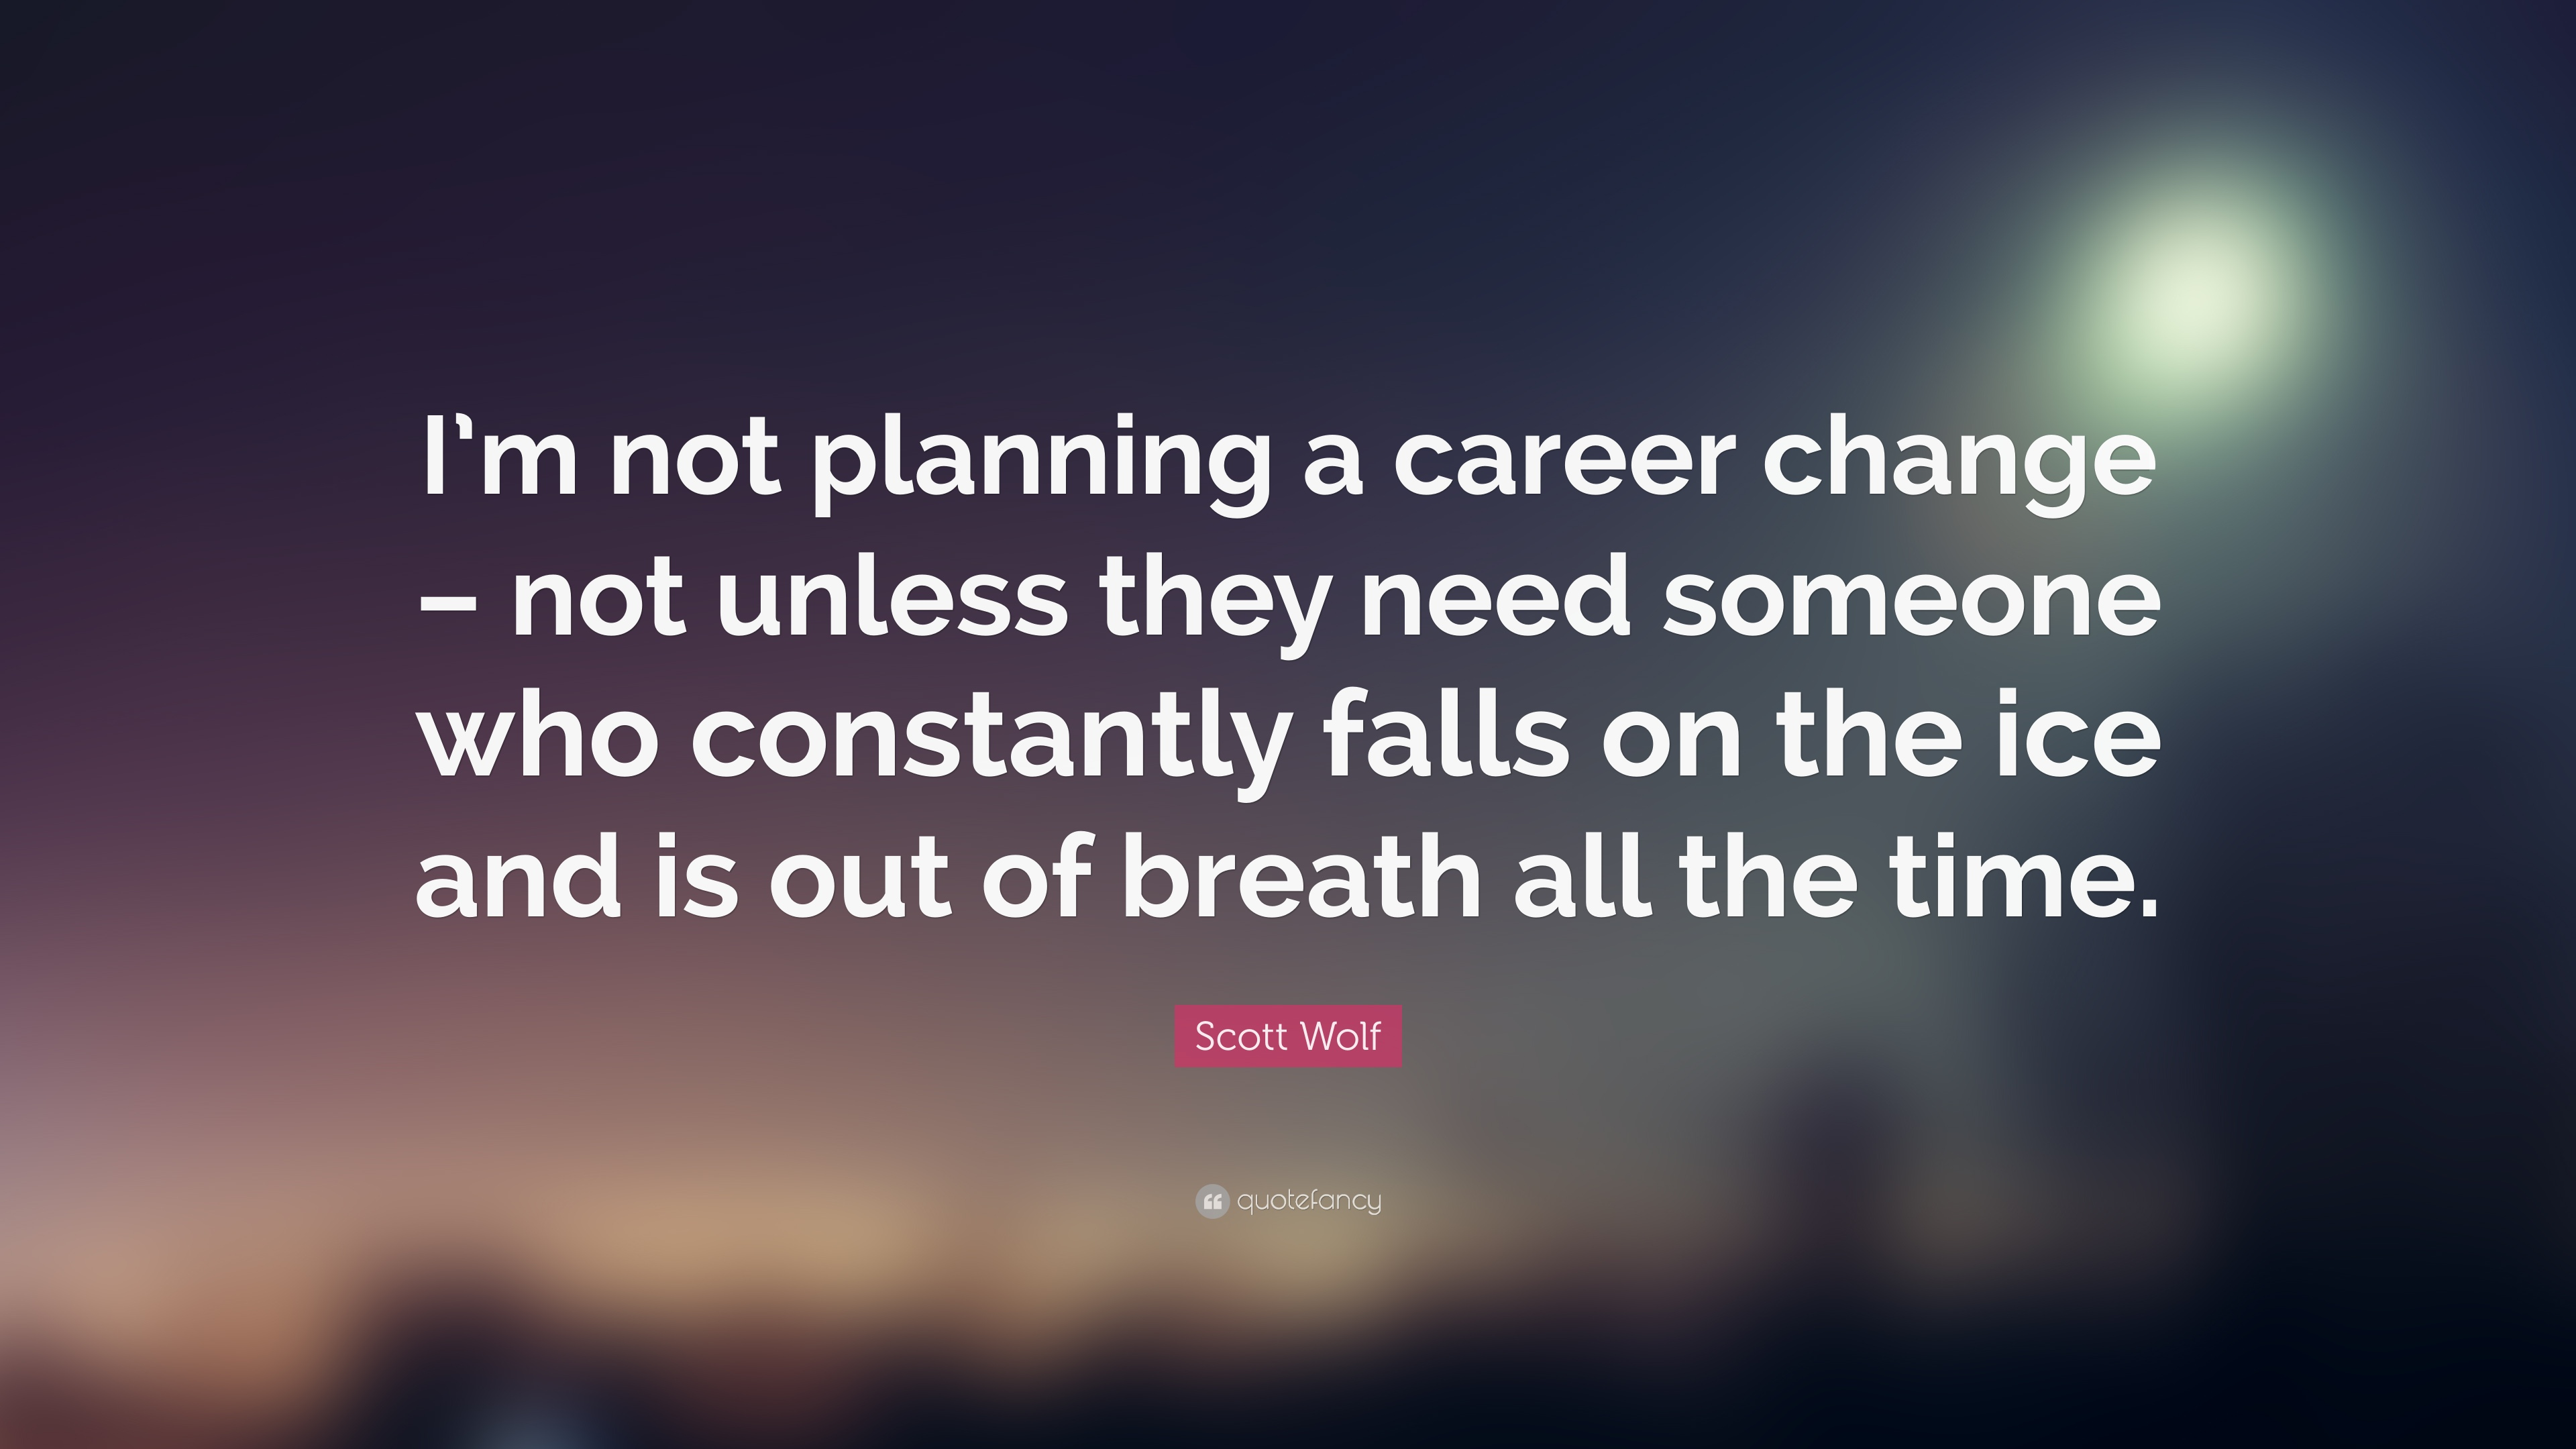 scott wolf quotes quotefancy scott wolf quote i m not planning a career change not unless